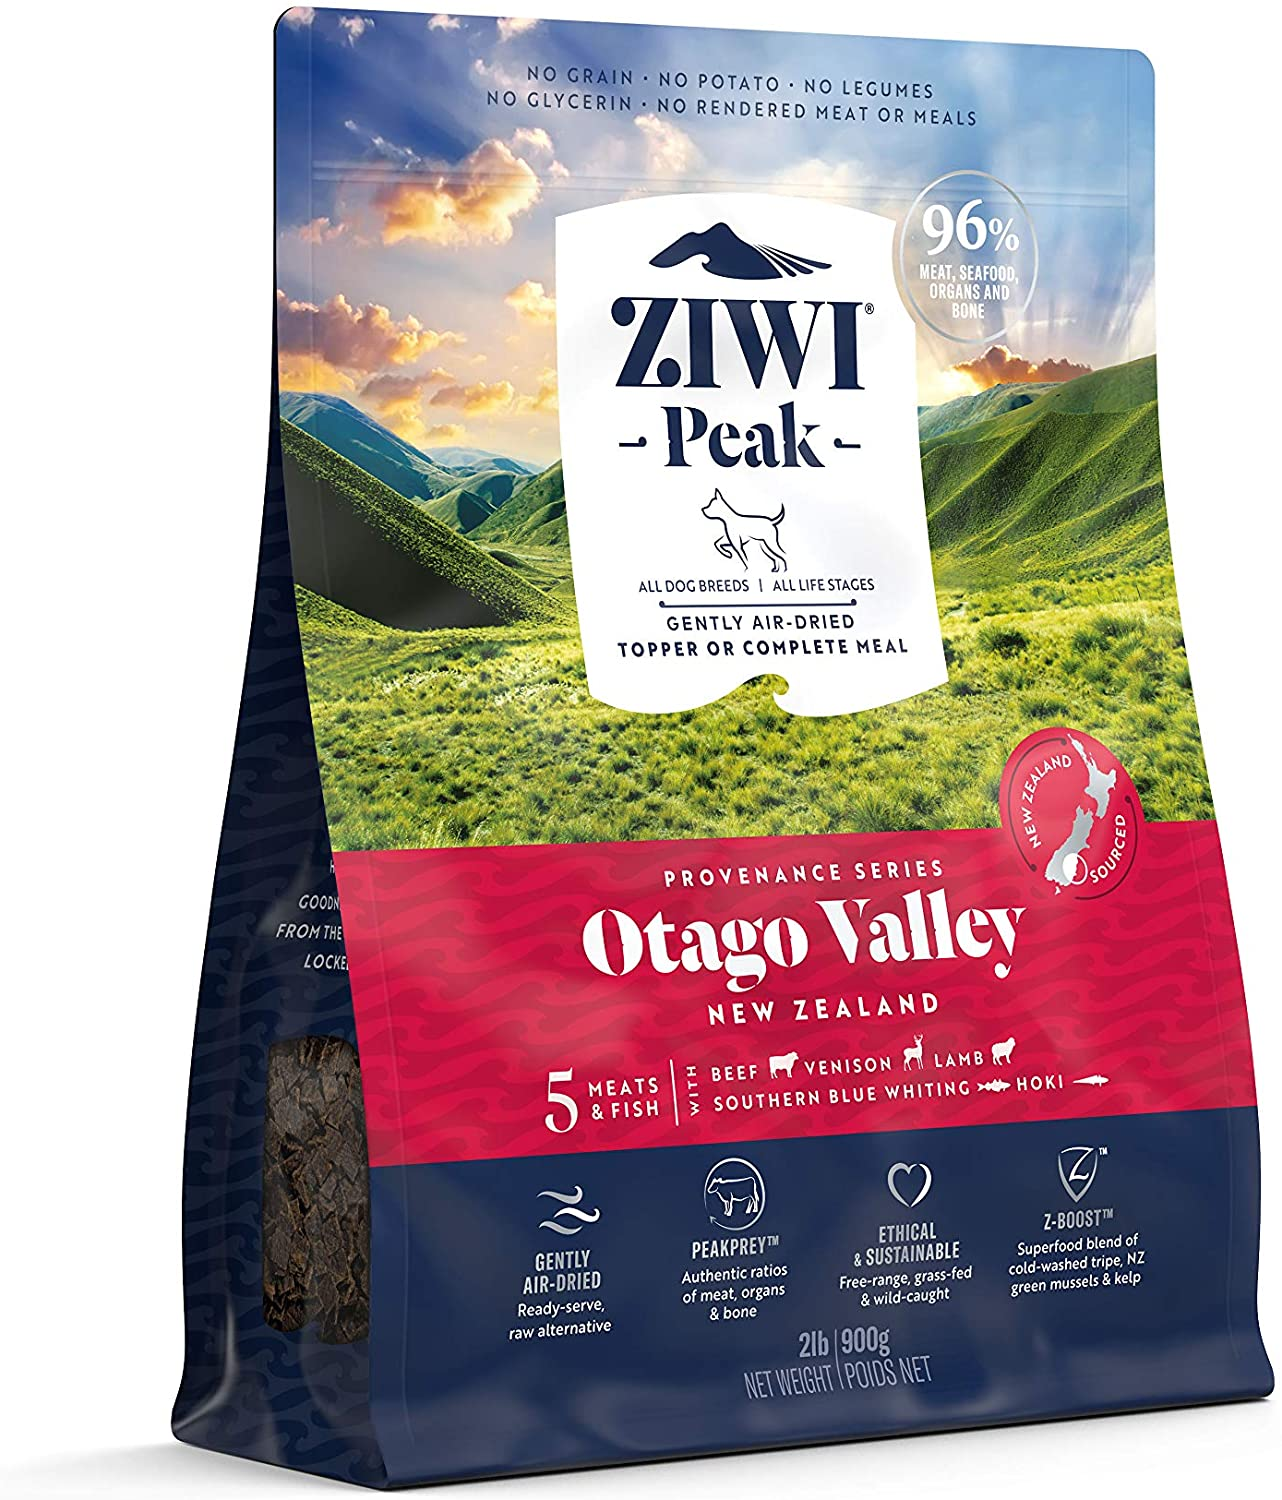 ZIWI Peak Provenance Air-Dried Dog Food – All Natural, High Protein, Grain Free with Superfoods (Otago Valley, 2lb)